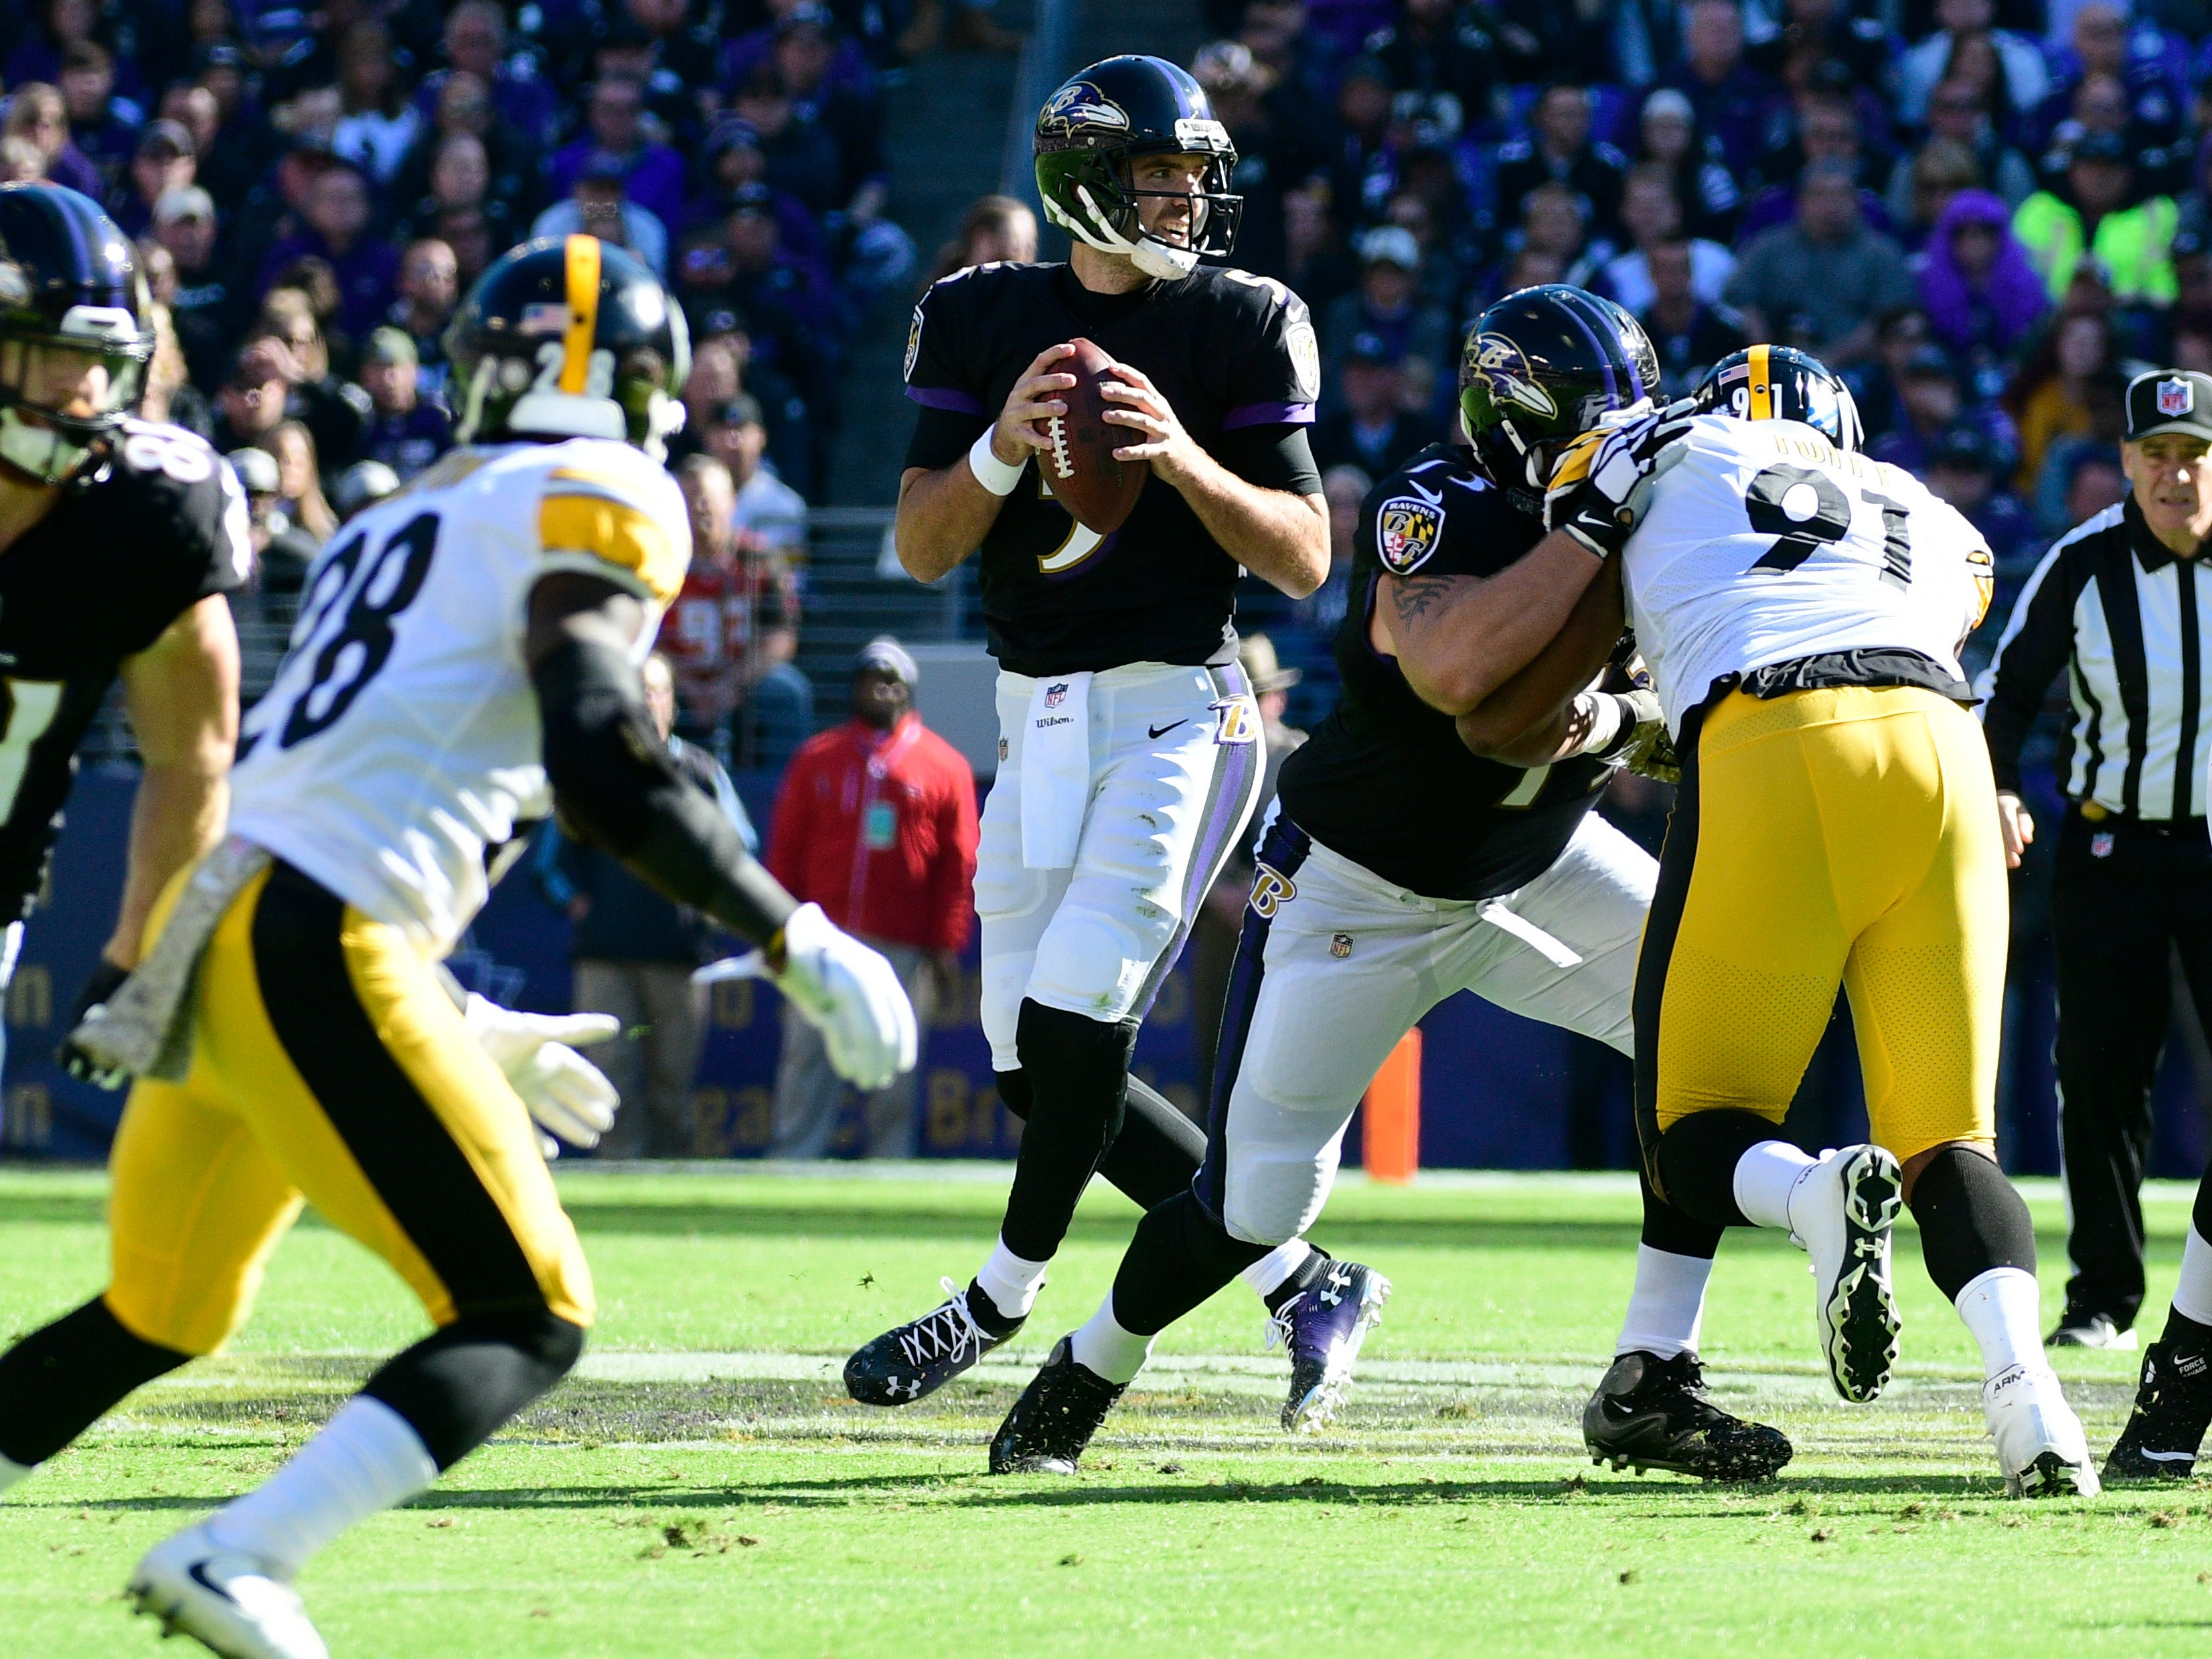 Baltimore Ravens quarterback Joe Flacco (5) in the pocket during the first quarter against the Pittsburgh Steelers at M&T Bank Stadium.